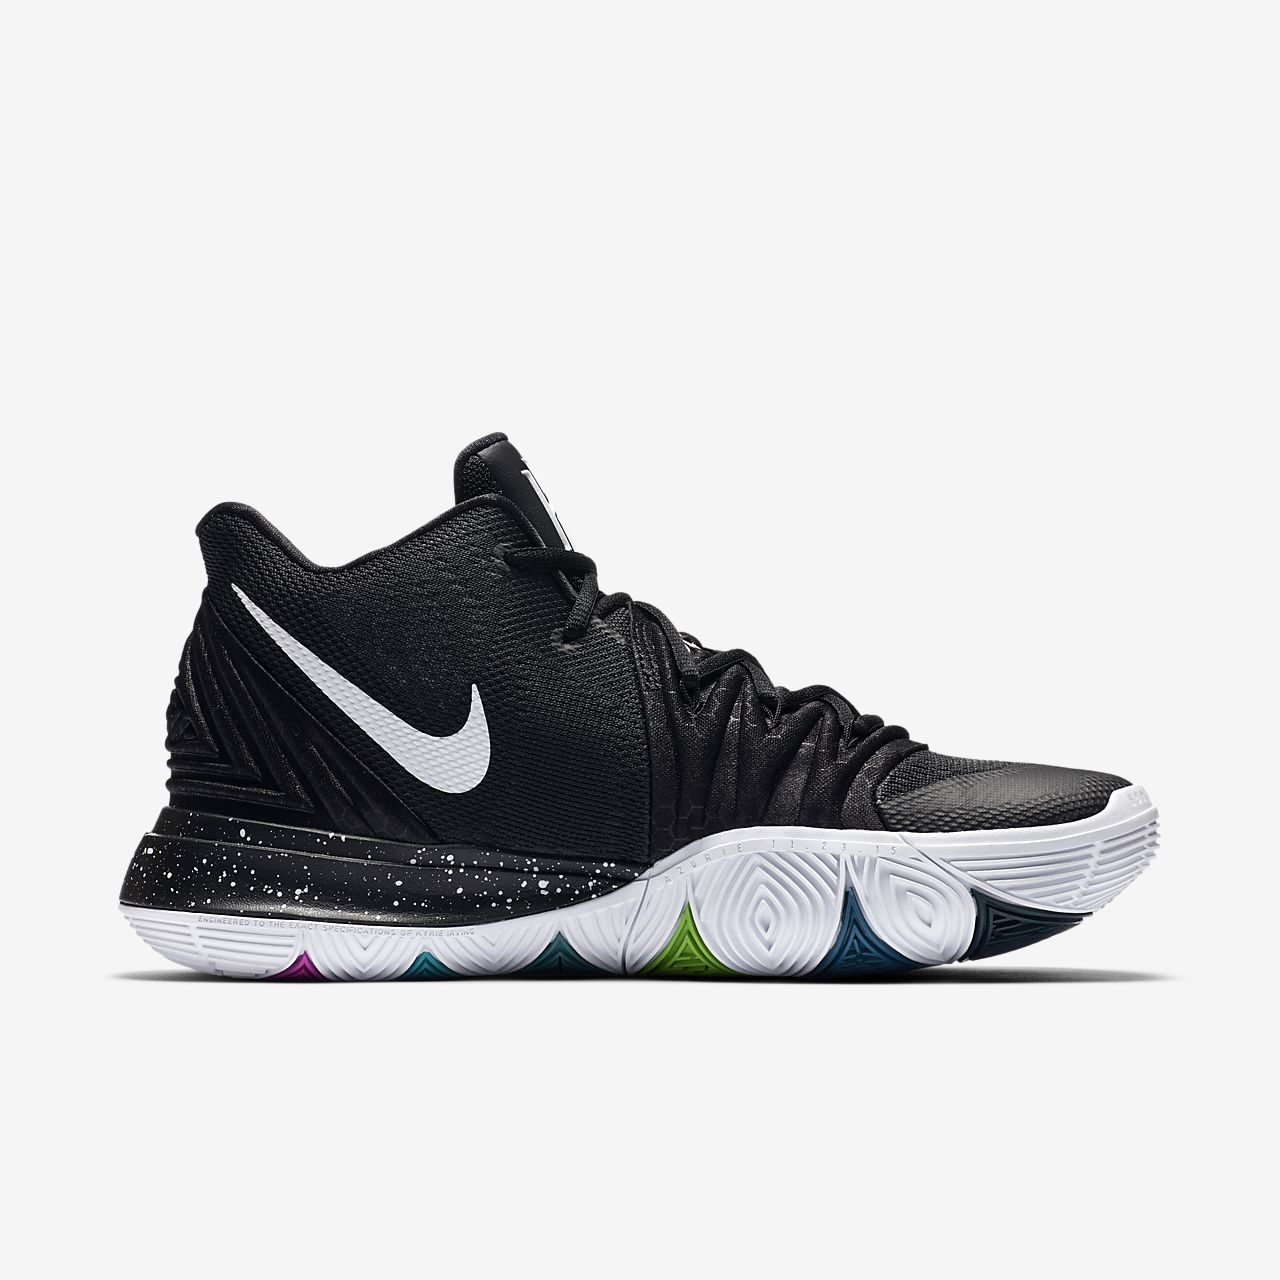 3cd1eca68907 Low Resolution Kyrie 5 Shoe Kyrie 5 Shoe